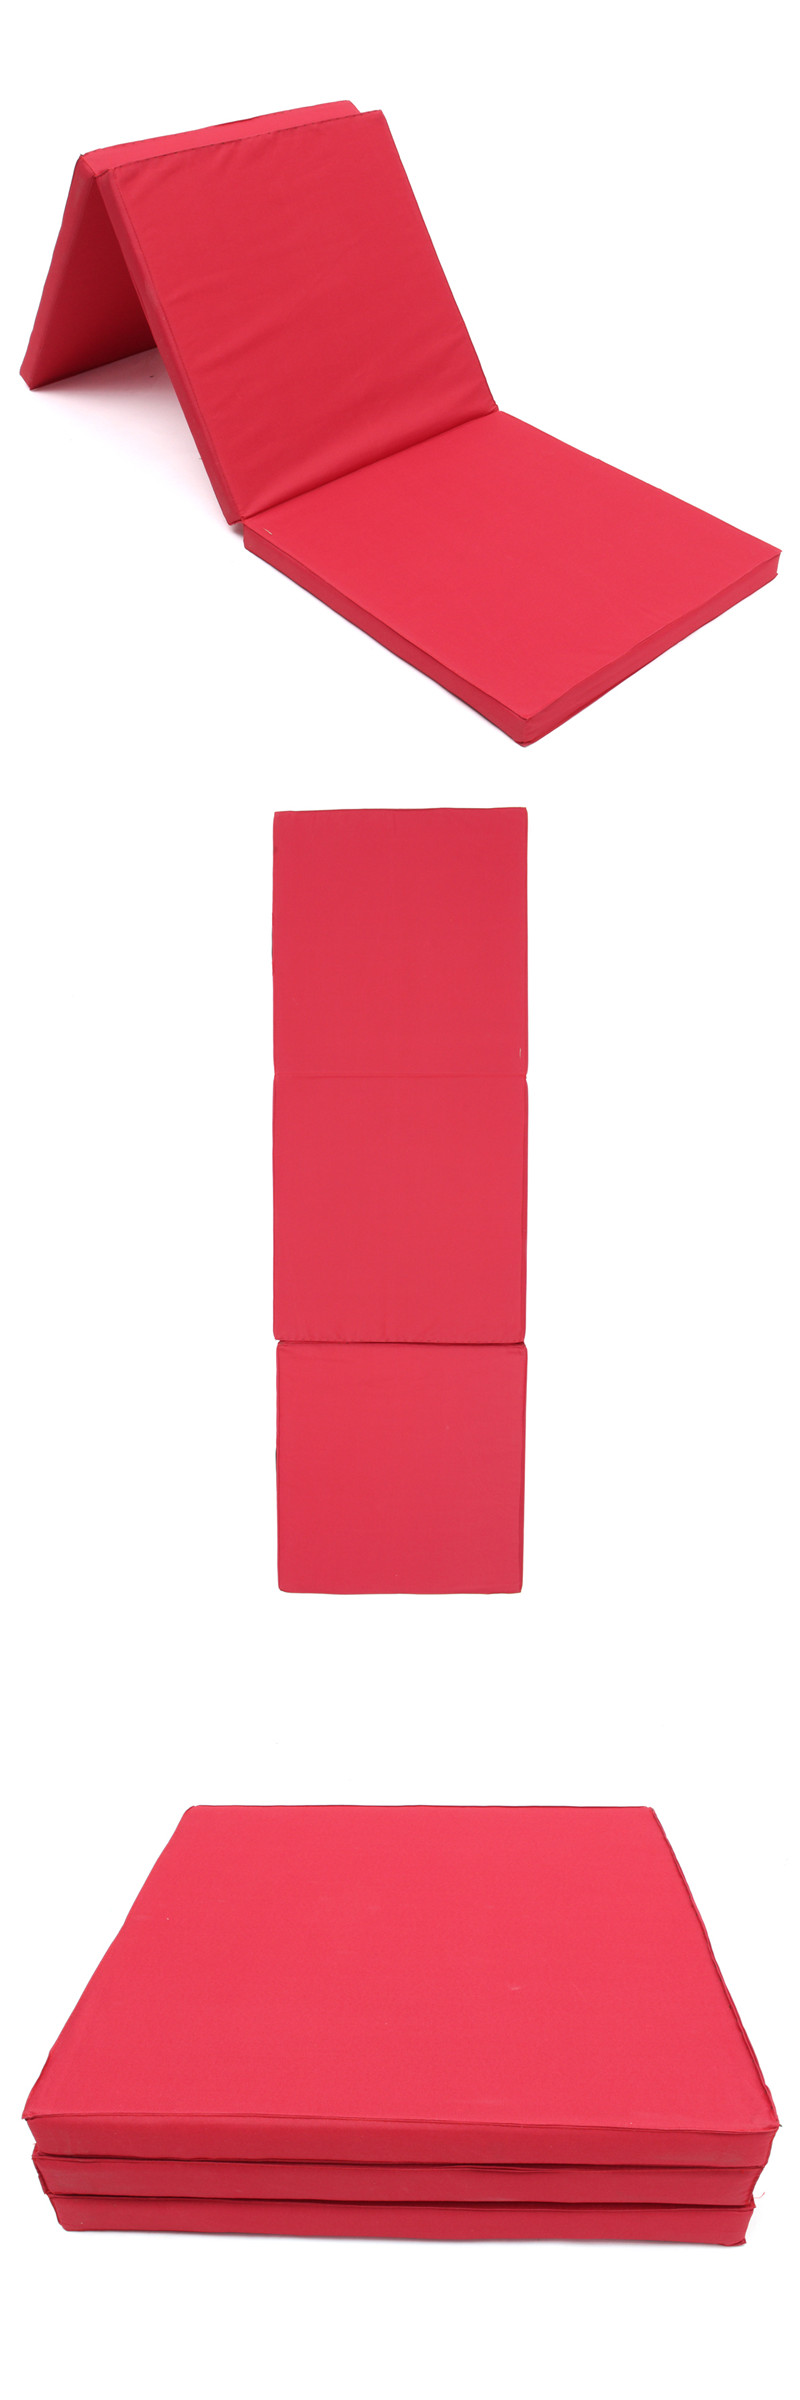 71x24x2inch Folding Panel Gymnastics Mat Gym Exercise Yoga Tri Pad